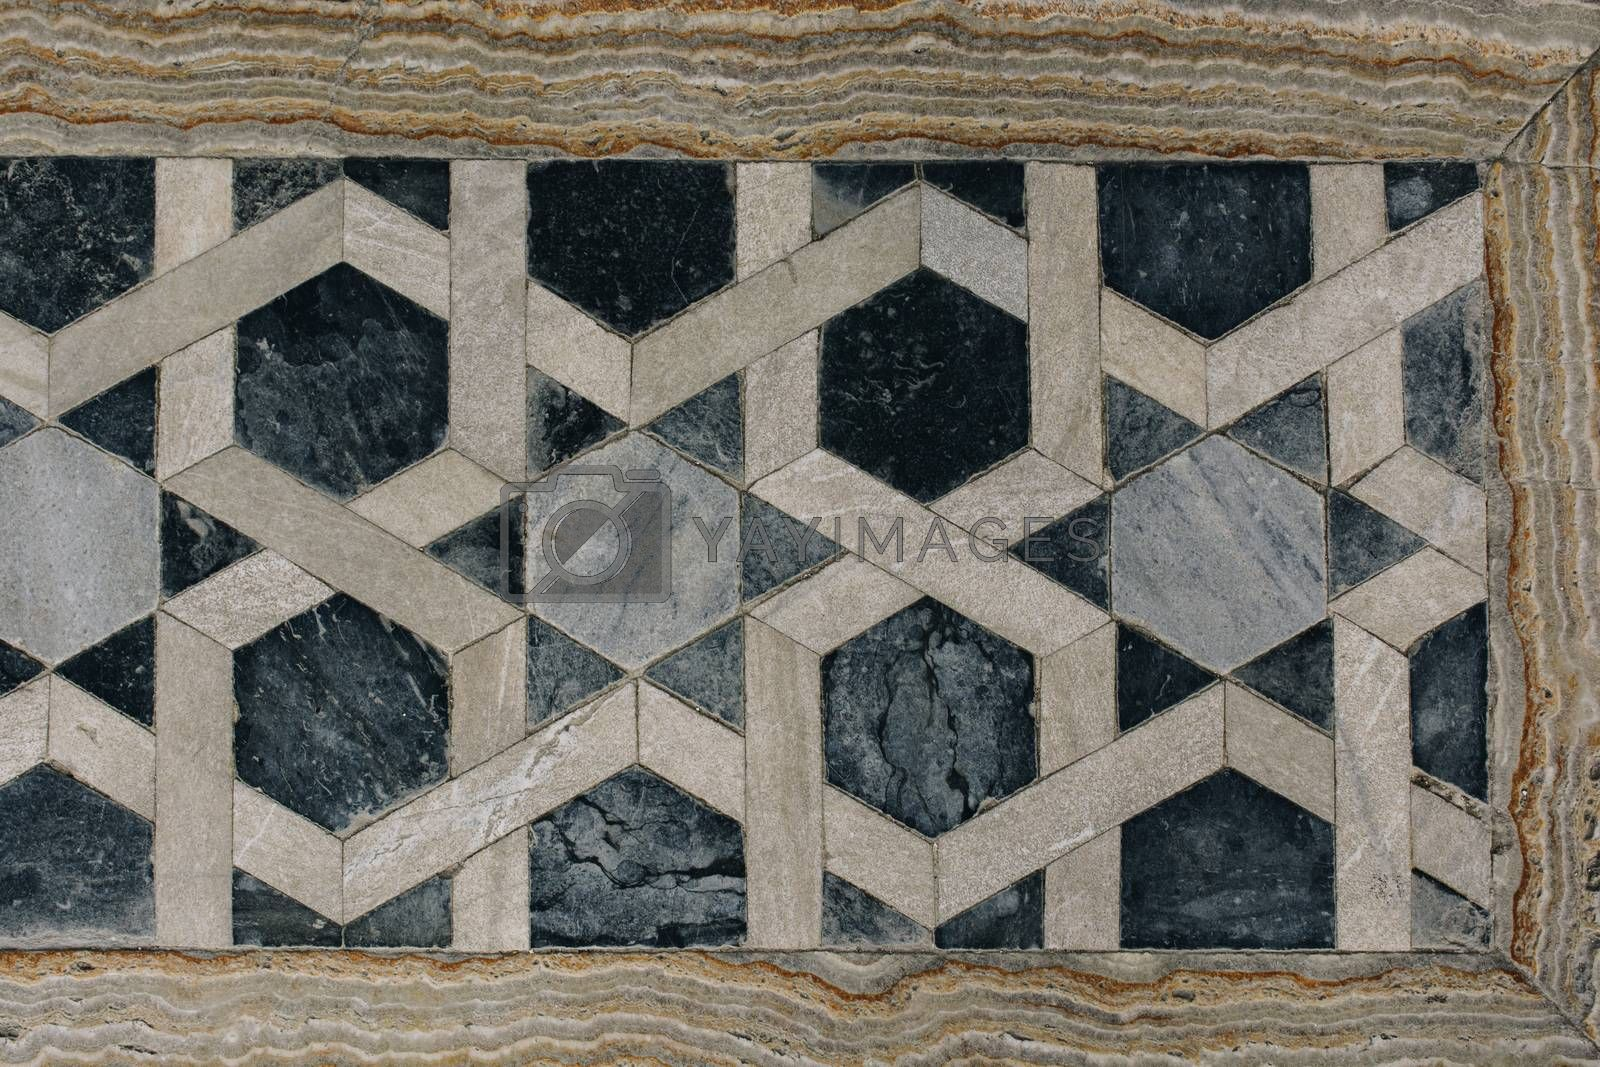 Example of Ottoman art patterns on stone by berkay